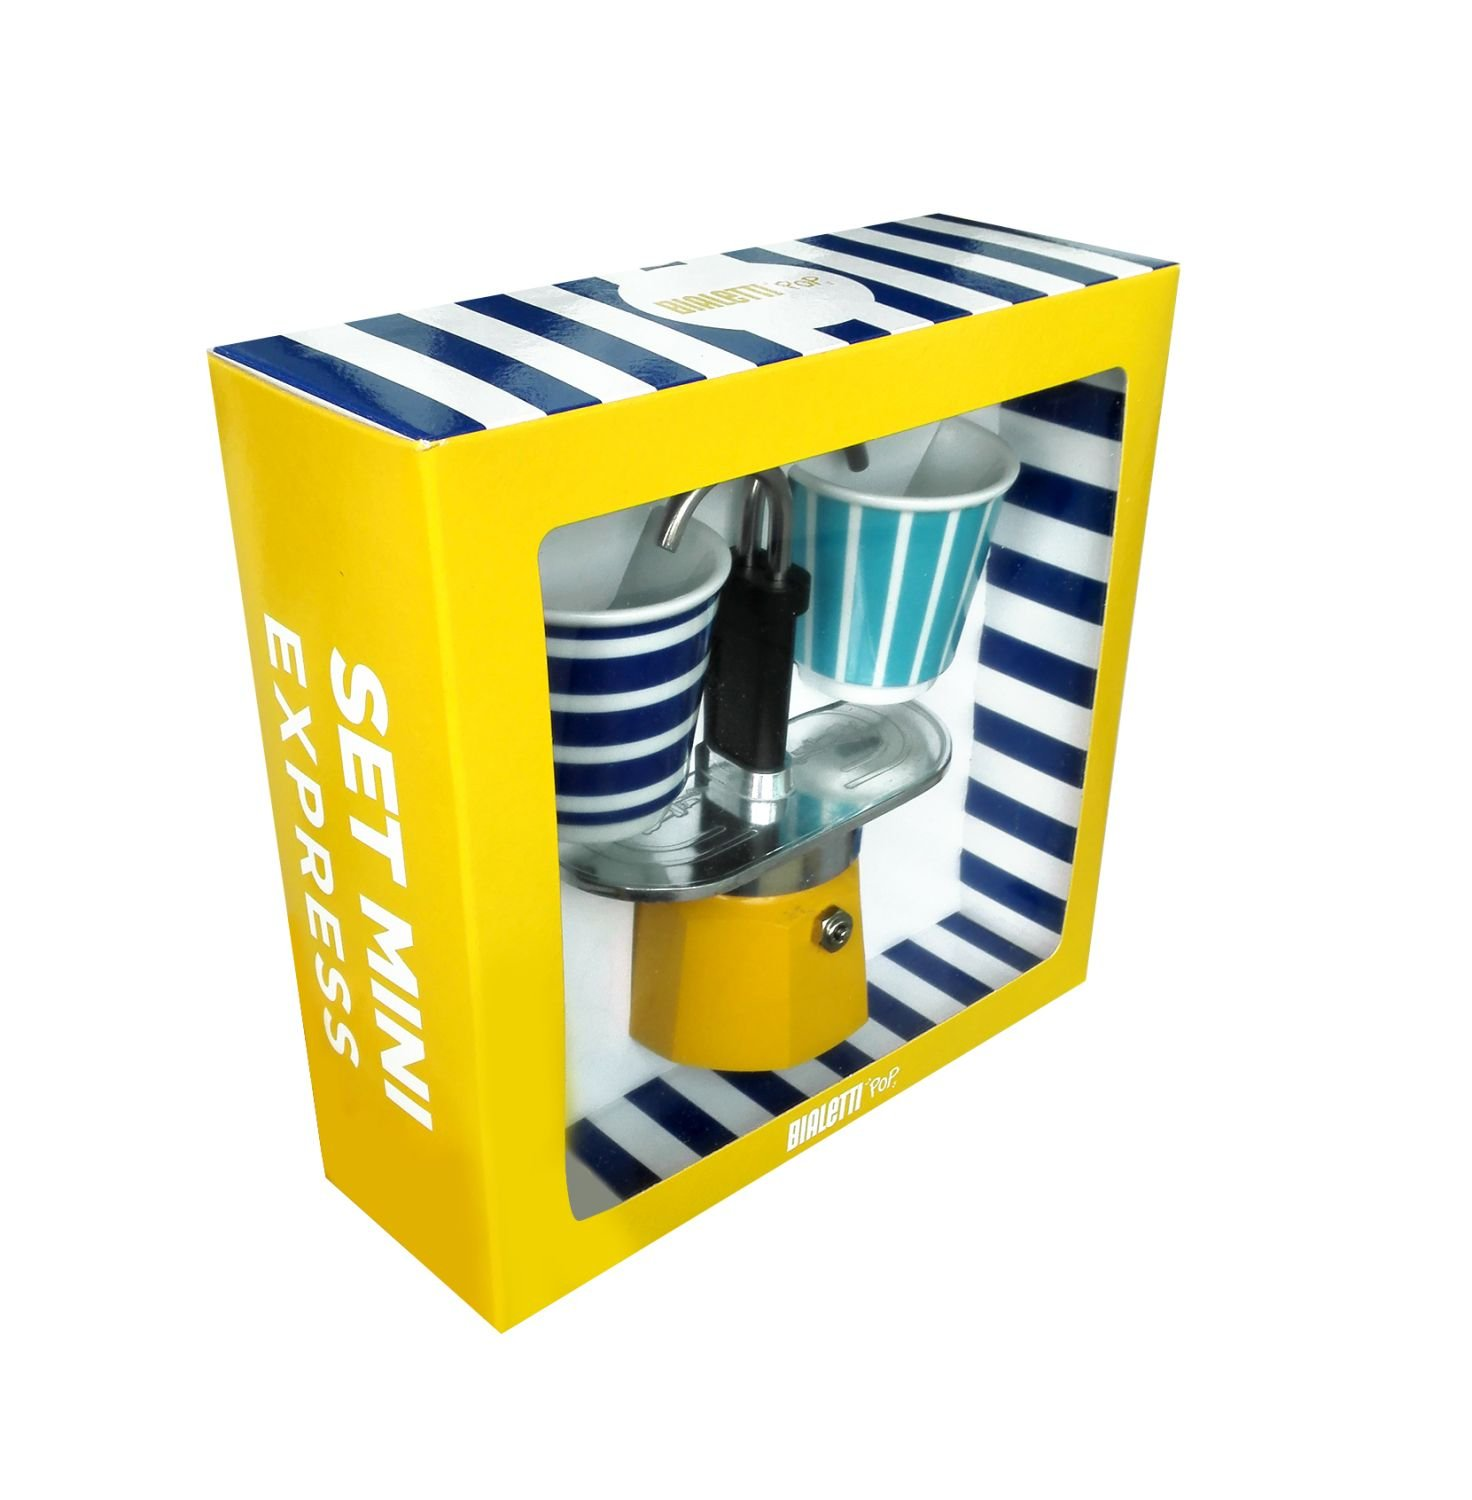 Bialetti - Mini Express Espresso Maker 2 Cup Yellow & 2 Bicchierini Pop Coffee Cups by Bialetti